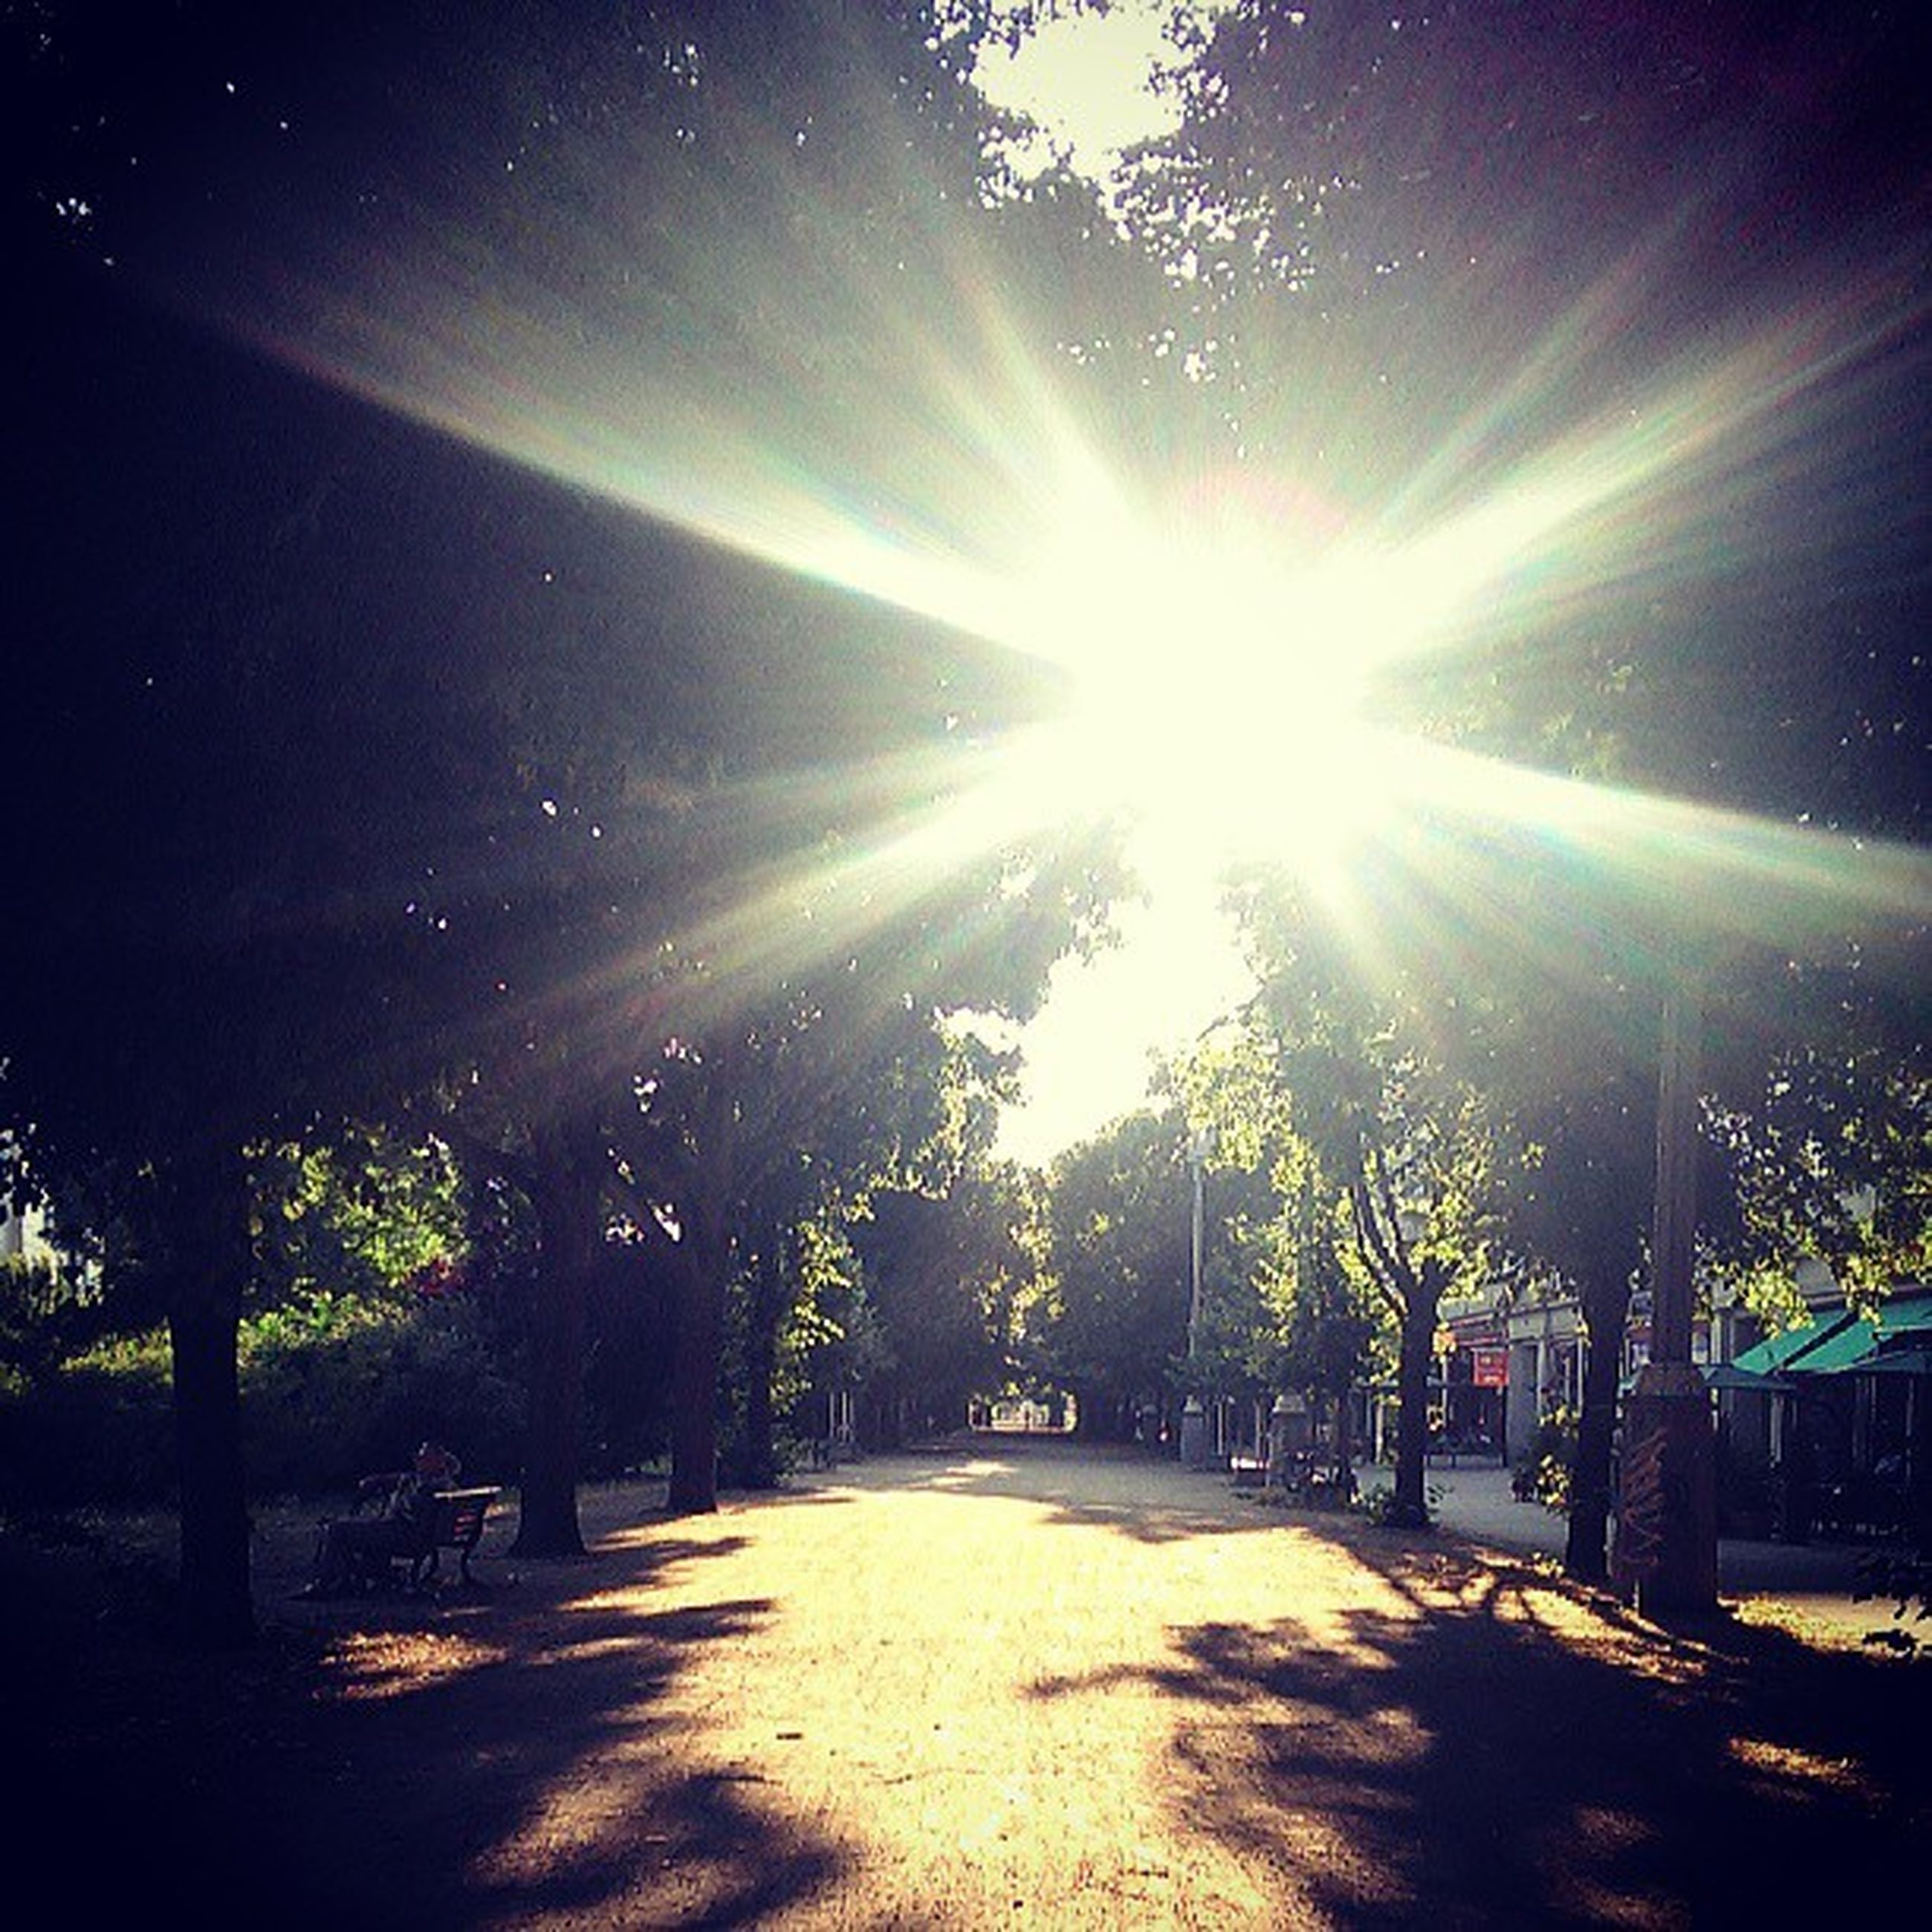 sun, sunlight, tree, sunbeam, lens flare, tranquility, the way forward, sunny, sky, nature, shadow, tranquil scene, road, beauty in nature, bright, scenics, landscape, growth, street, day